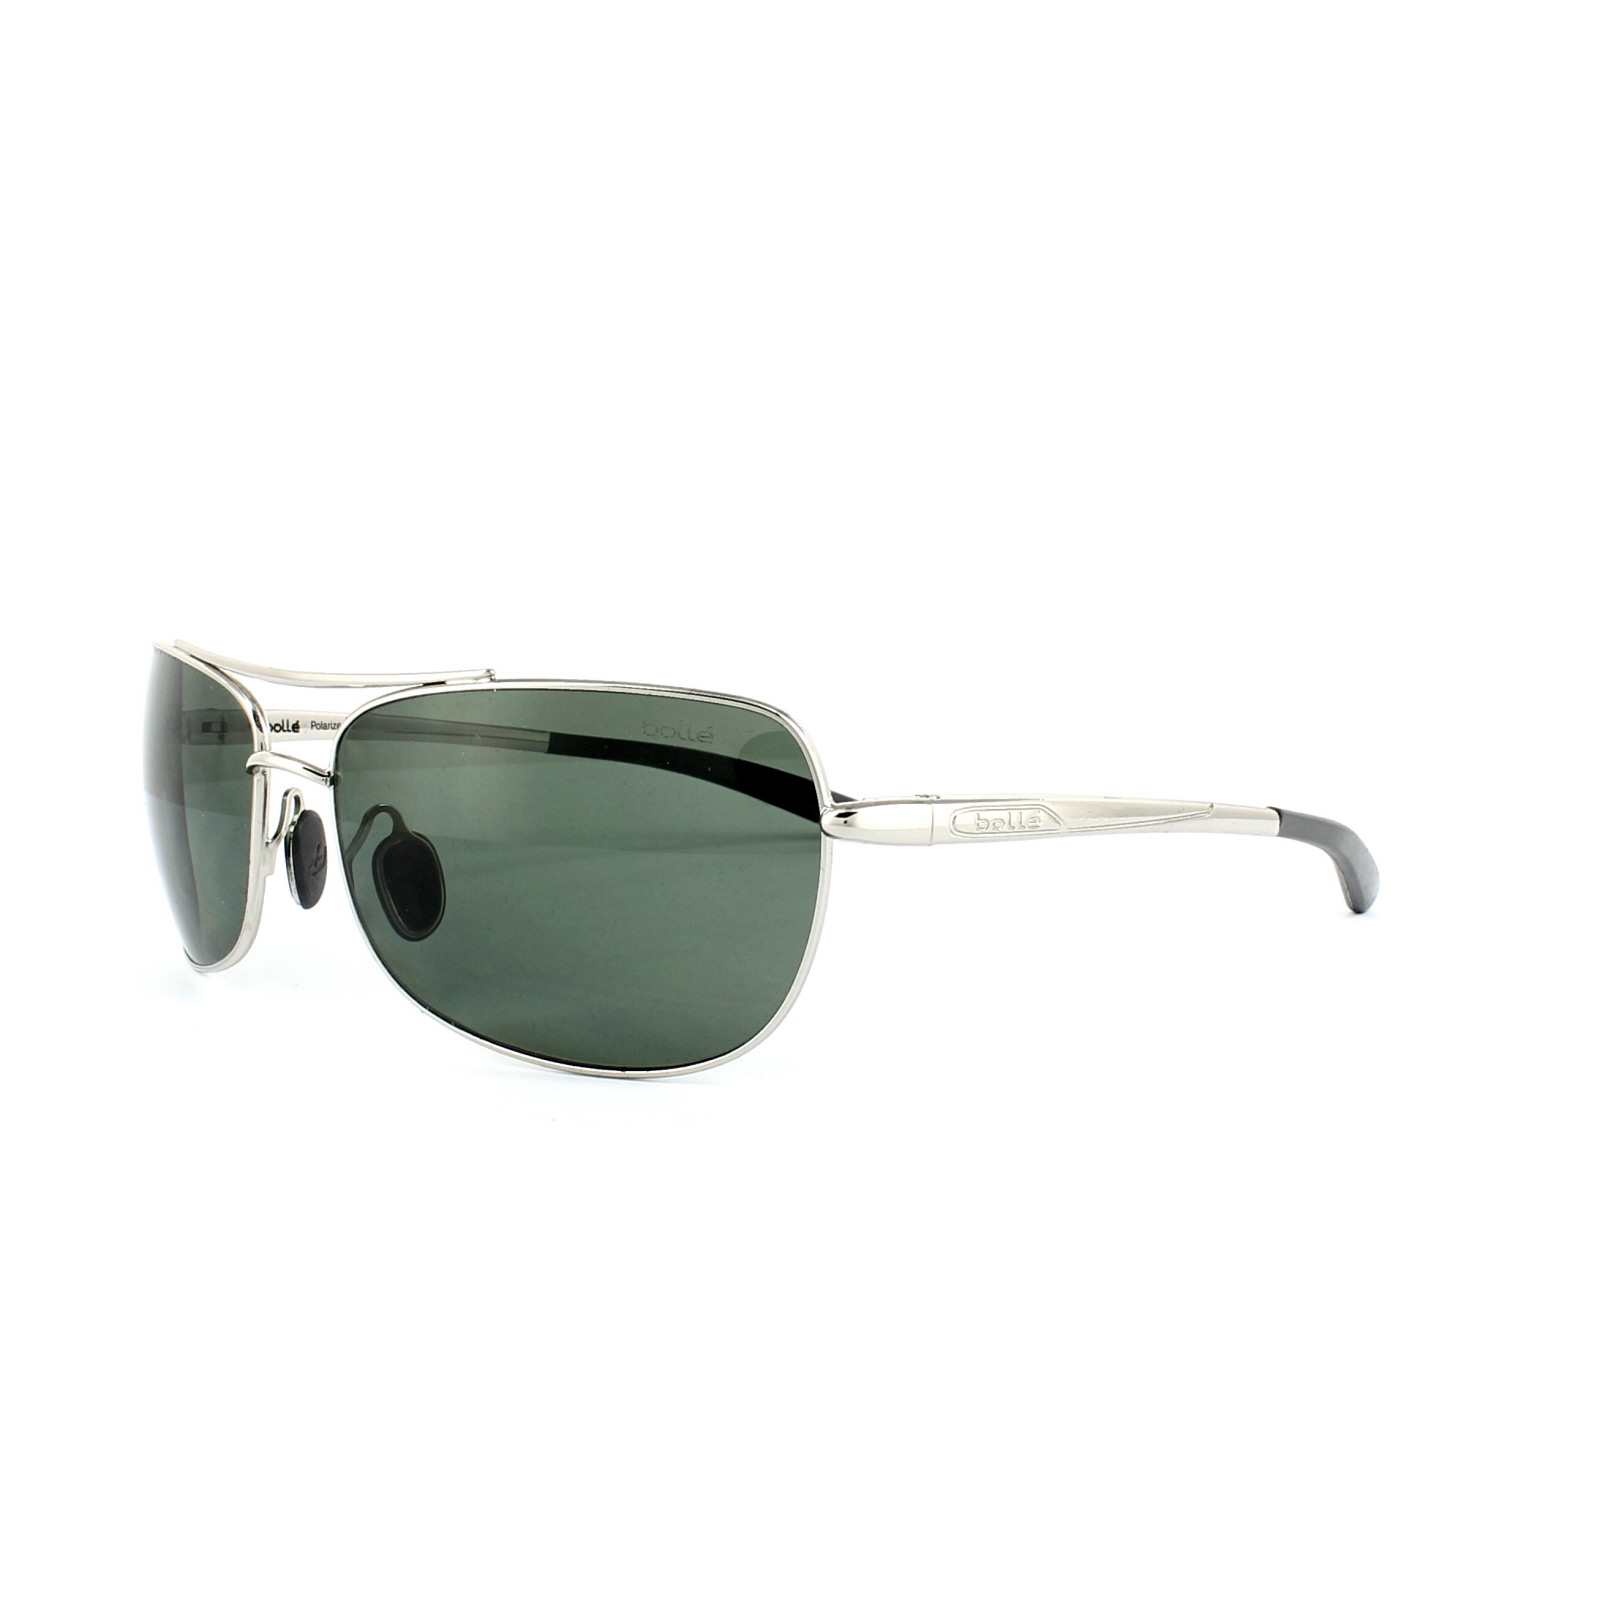 36fe1df06a Sentinel Bolle Sunglasses Quindaro 11576 Shiny Silver Axis Grey Green  Polarized